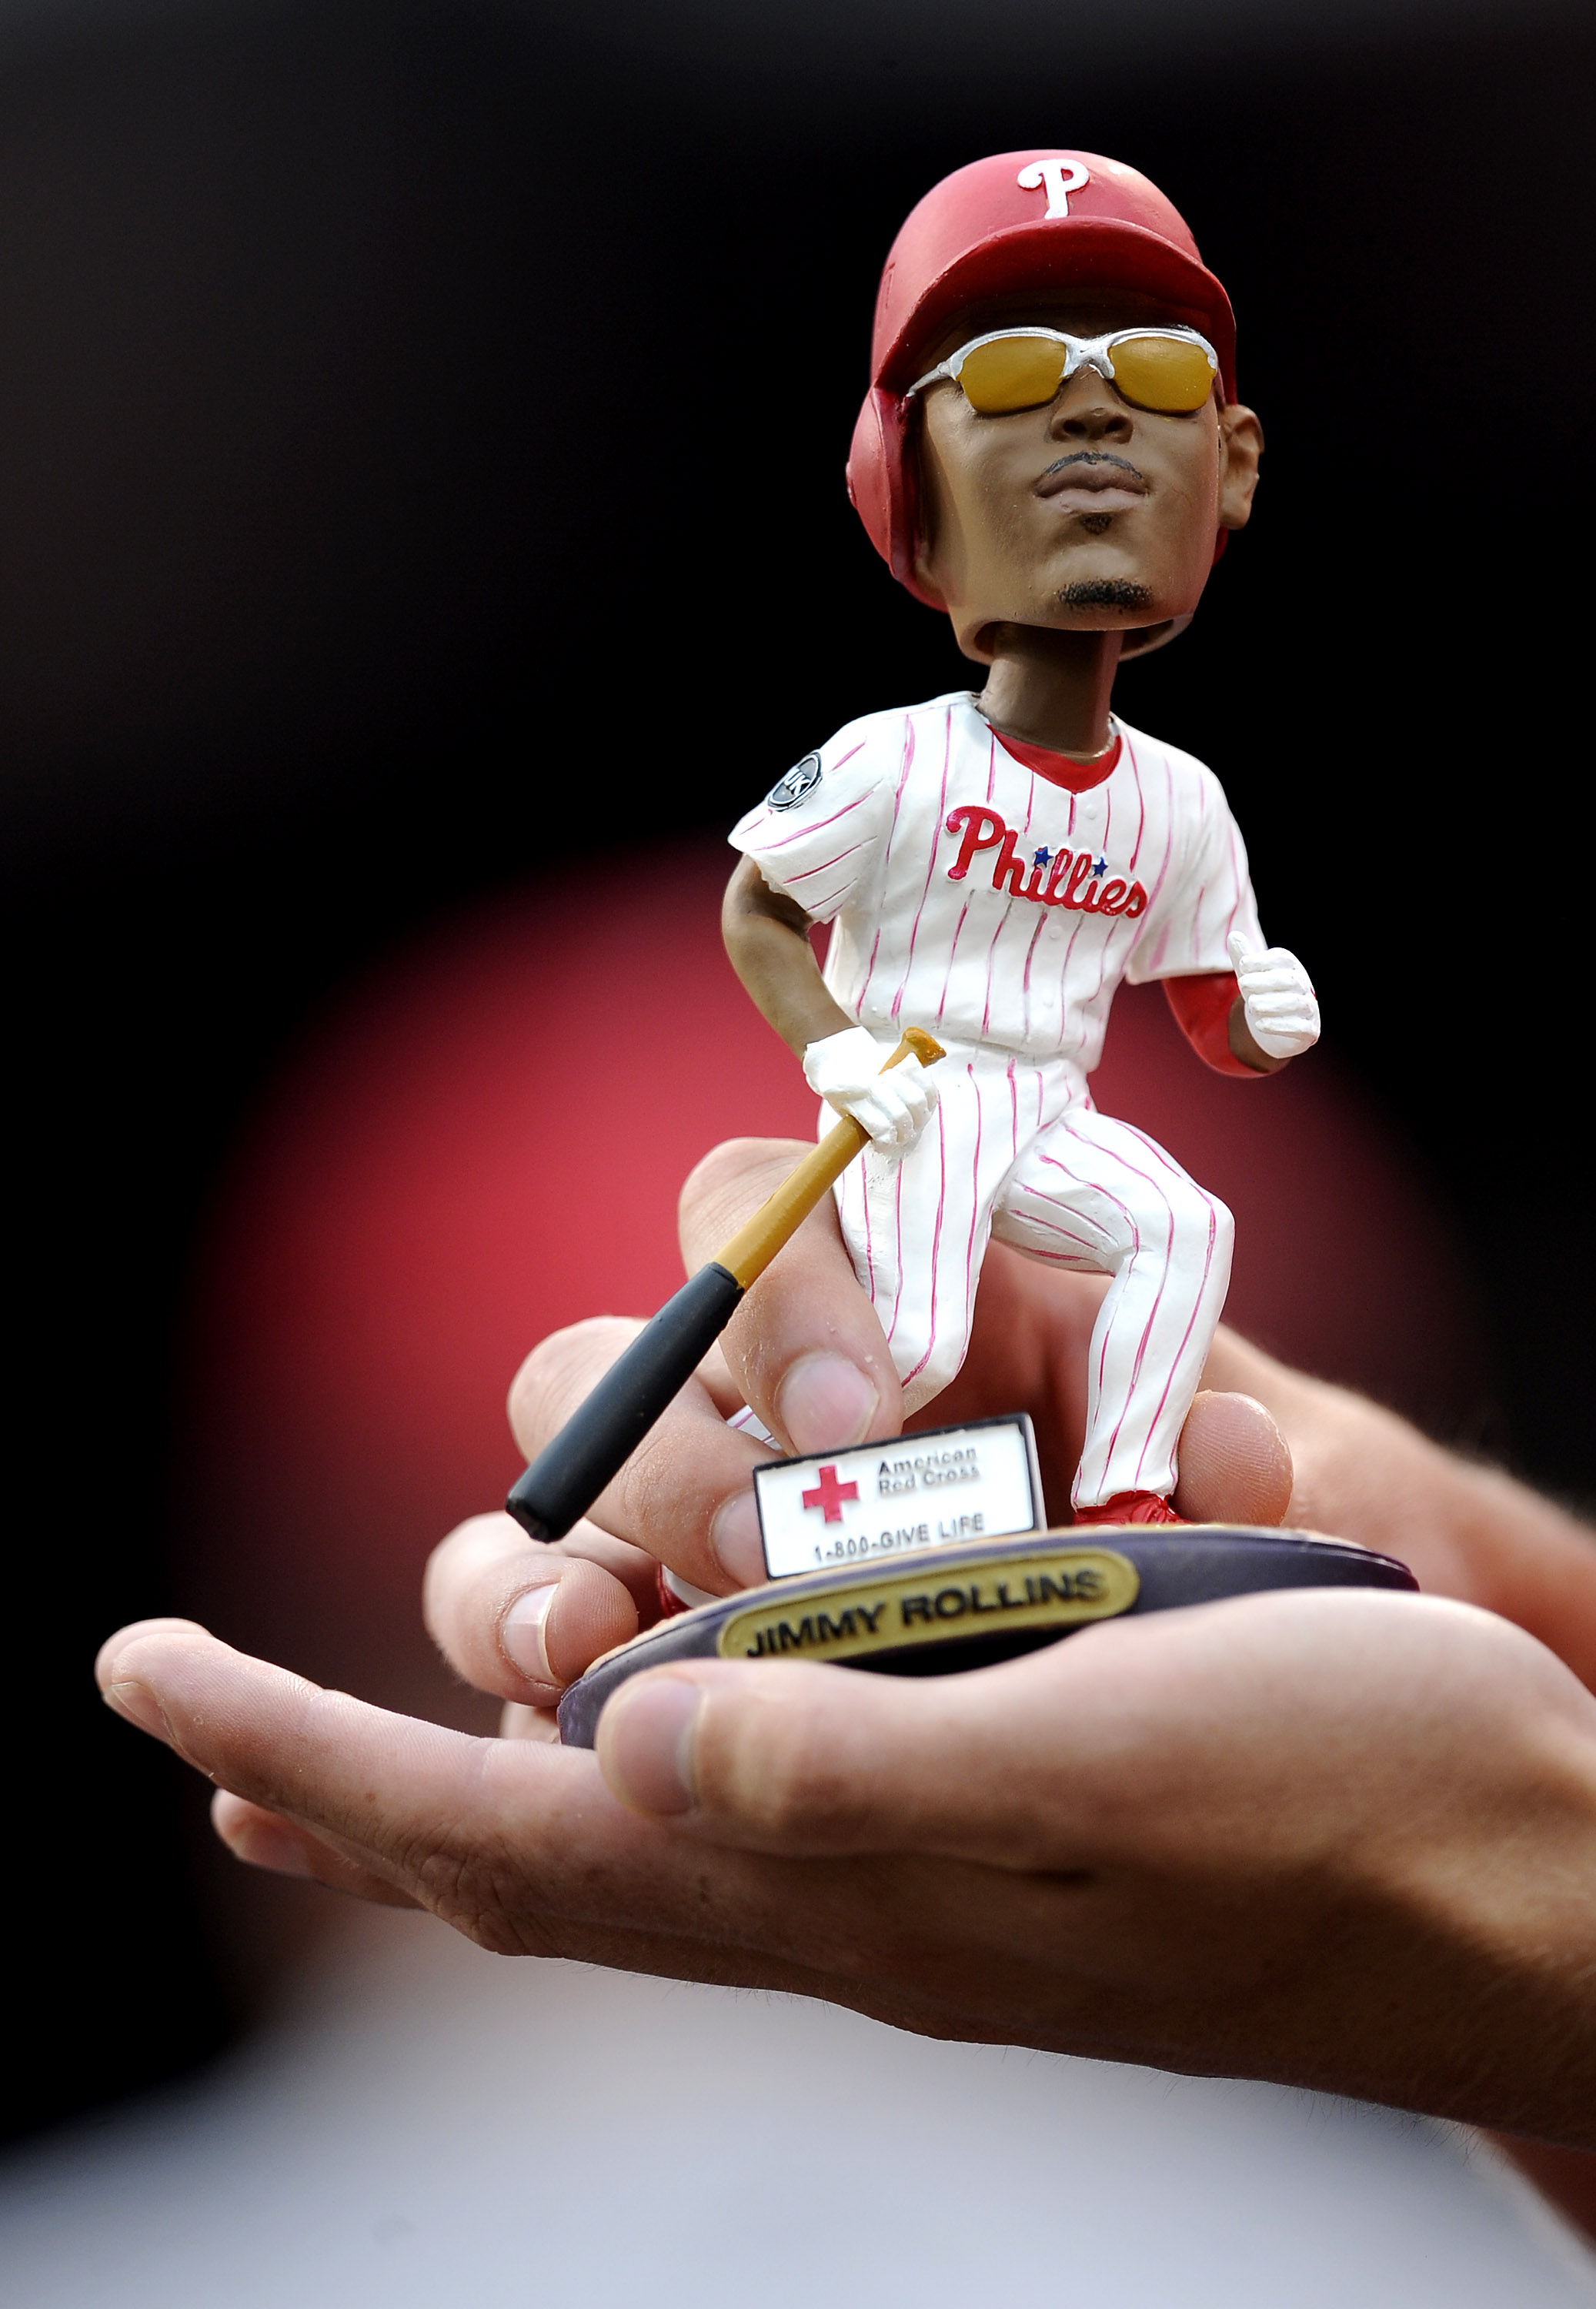 PHILADELPHIA - JUNE 4: A fan holds a bobblehead figure of Jimmy Rollins #11 of the Philadelphia Phillies before a game against the Cincinnati Reds at Citizens Bank Park June 4, 2008 in Philadelphia, Pennsylvania. (Photo by Jeff Zelevansky/Getty Images)